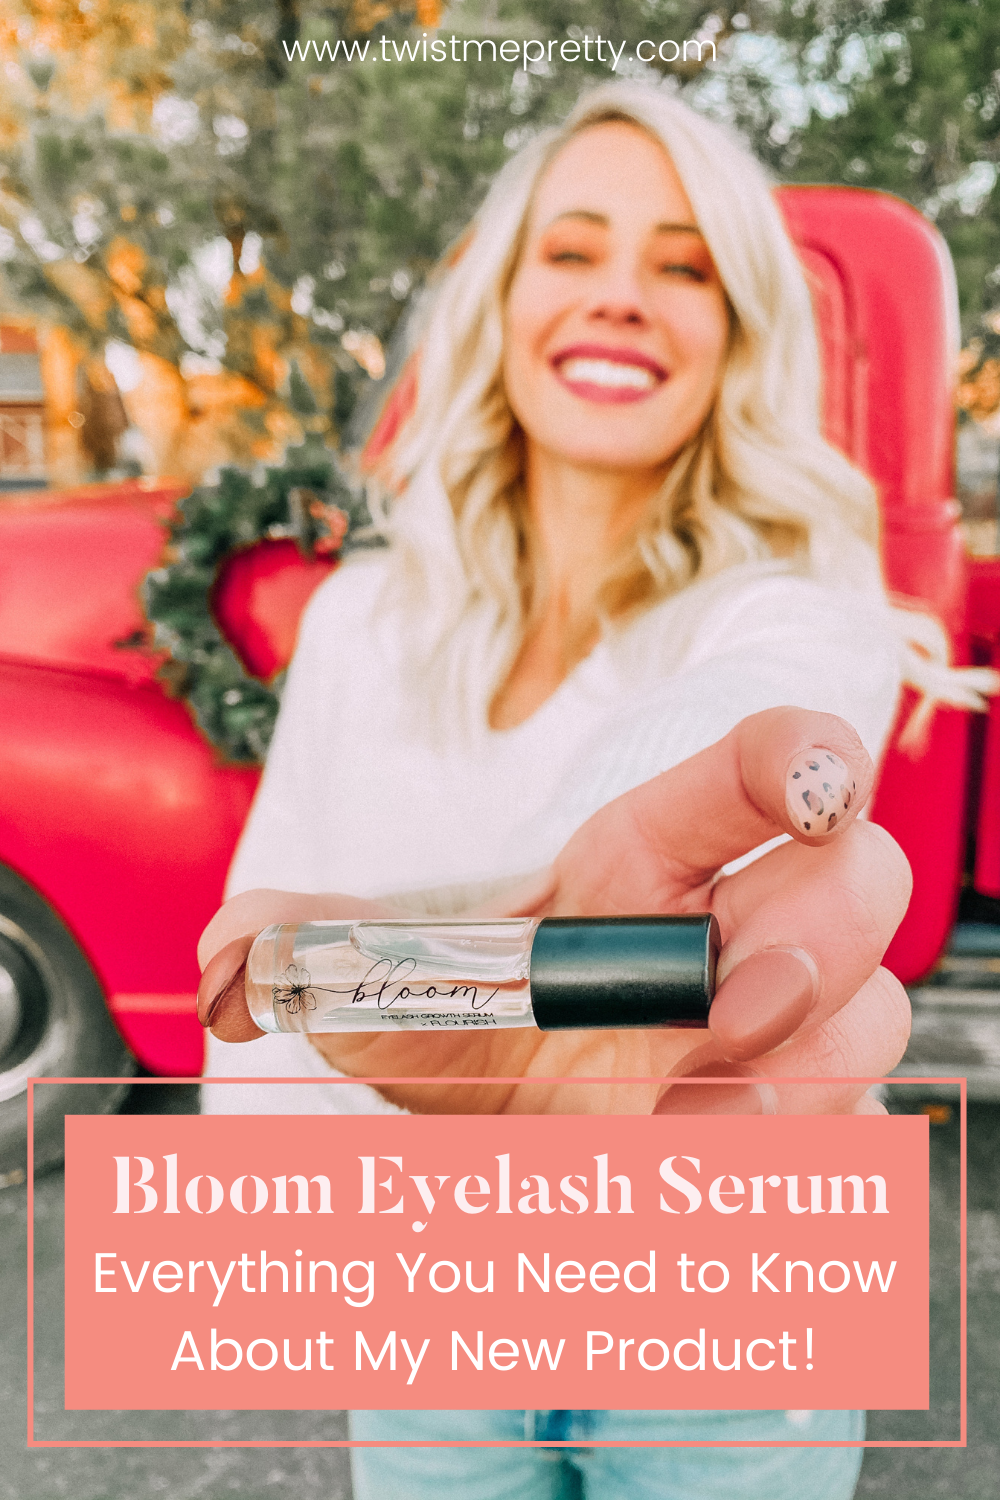 Bloom Eyelash Serum: Everything You Need to Know about this New Product www.twistmepretty.com